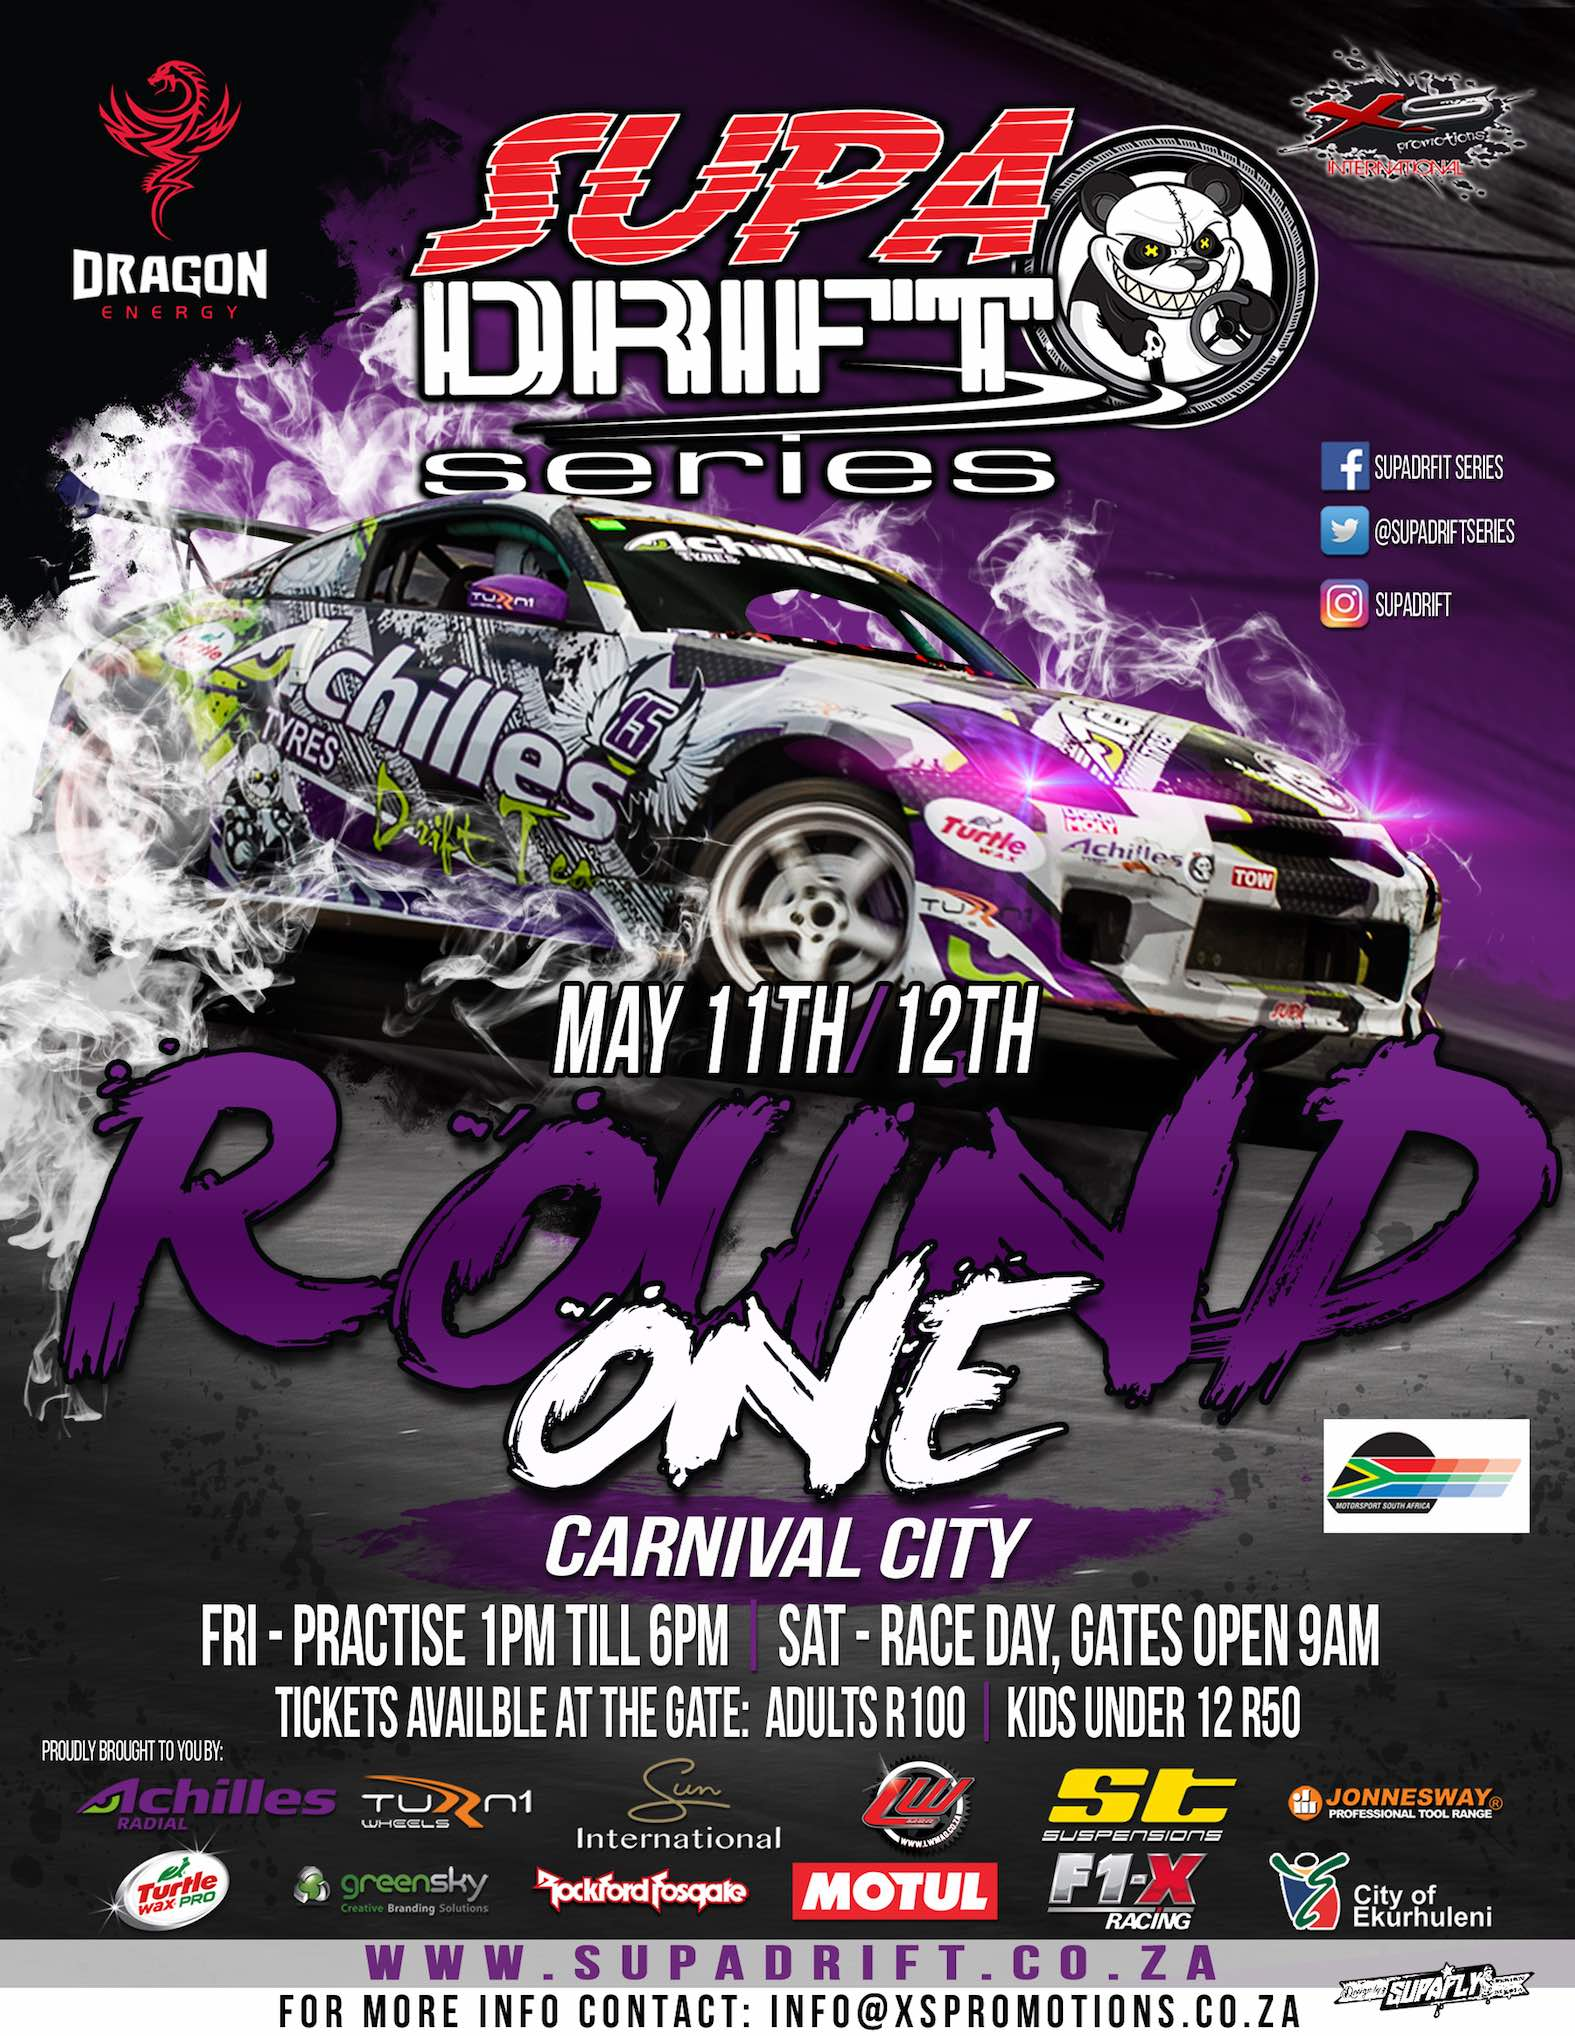 Details for Round 1 of the 2018 national drifting championship, the SupaDrift Series